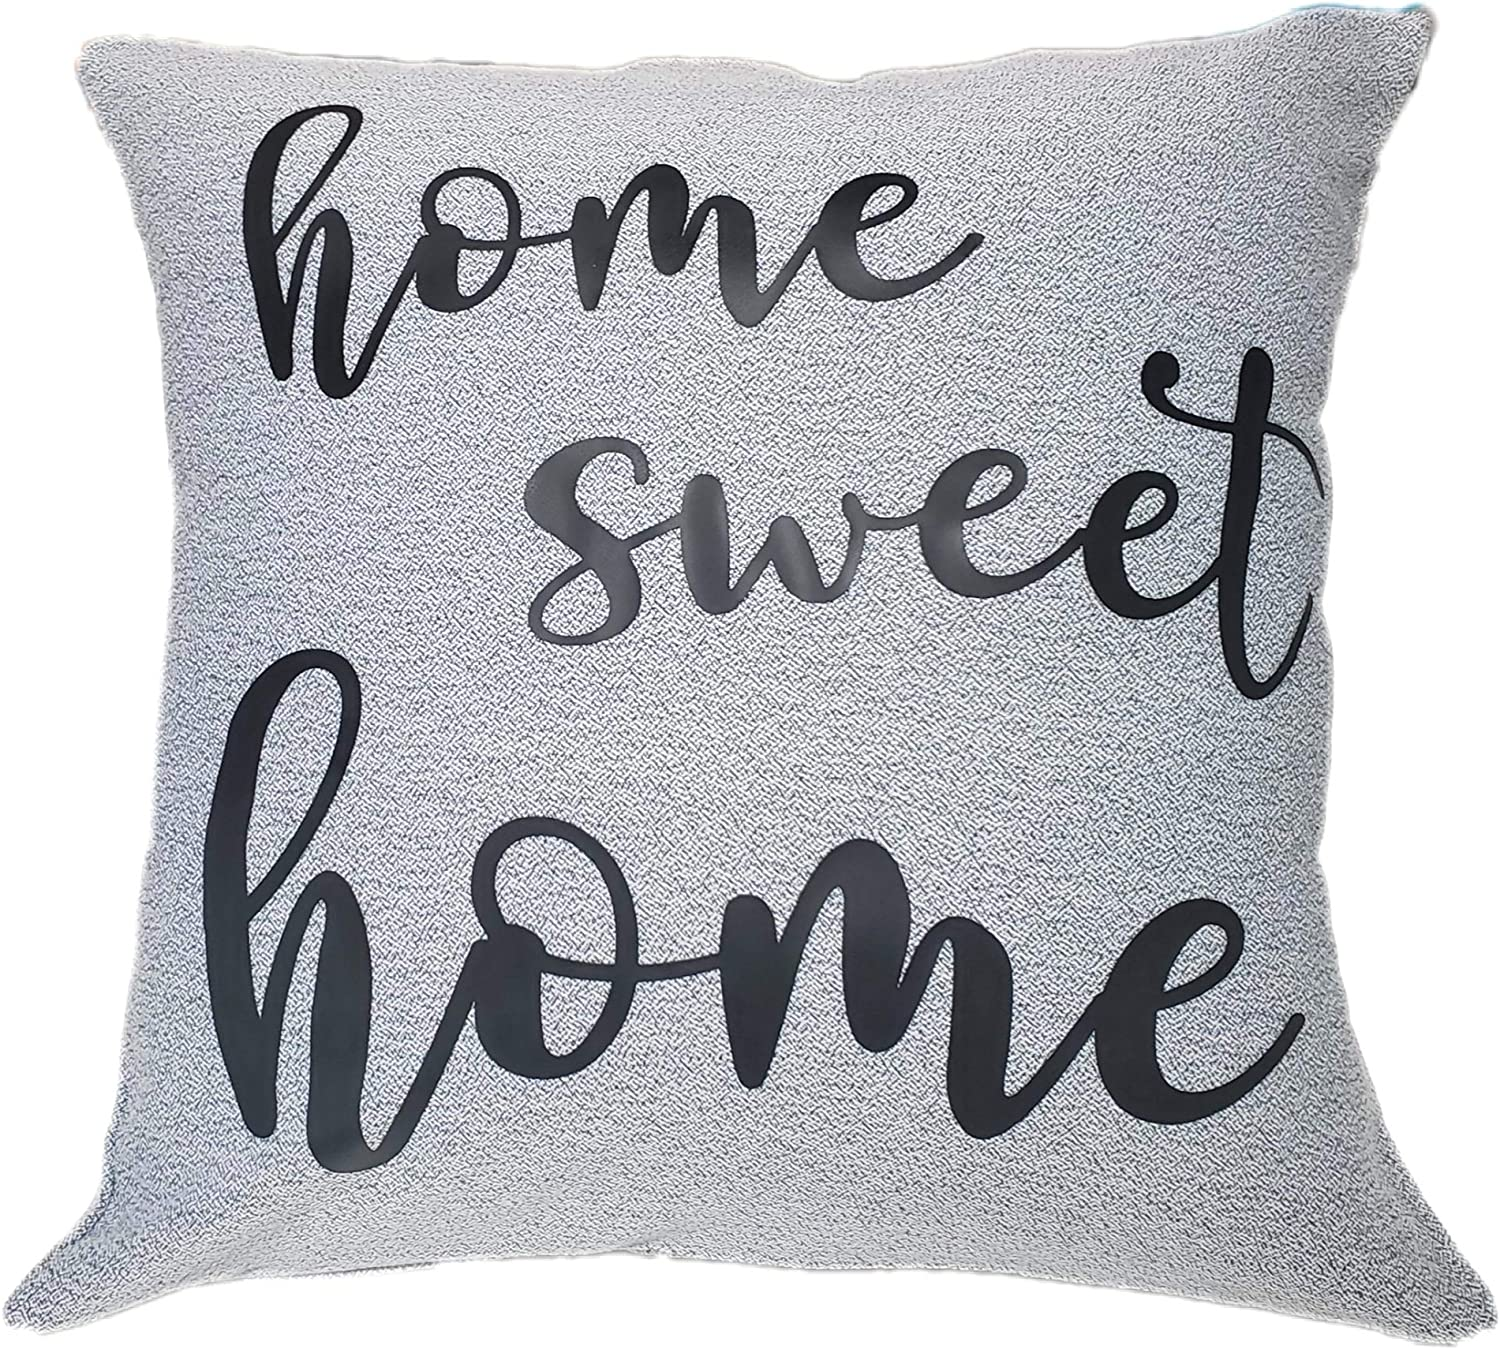 Rb And Co Home Sweet Home Throw Pillow Cushion Sham Cover And Insert 16x16 Gray Polyblend Cover Home Kitchen